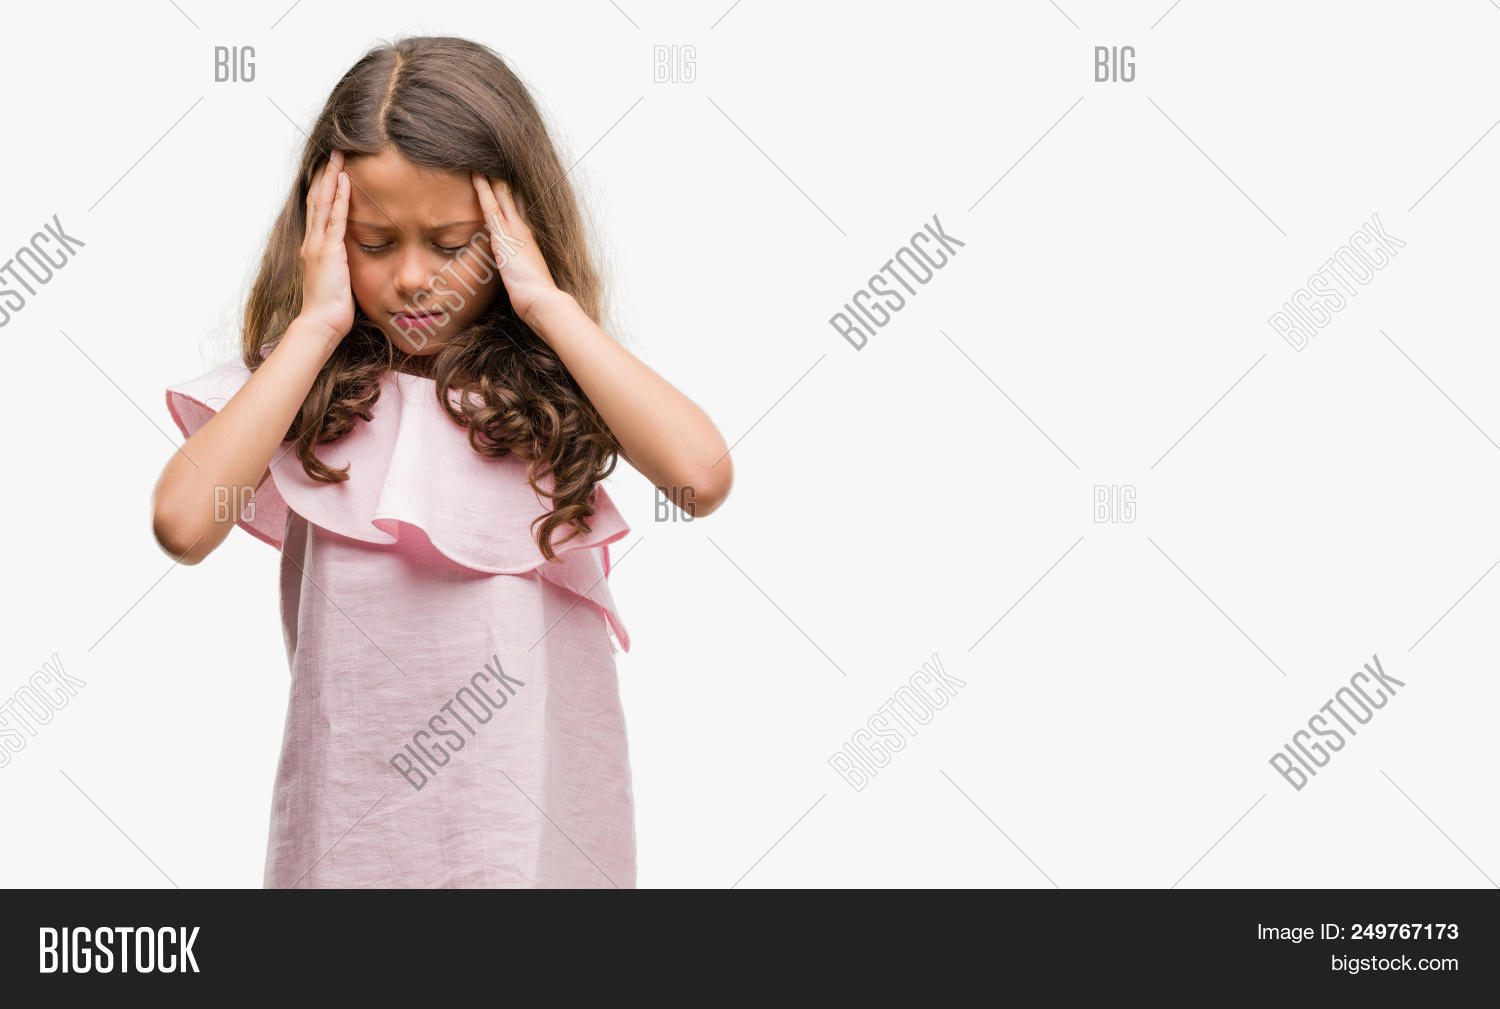 3b68112f8d0 🔥 Brunette hispanic girl wearing pink dress with hand on head for ...